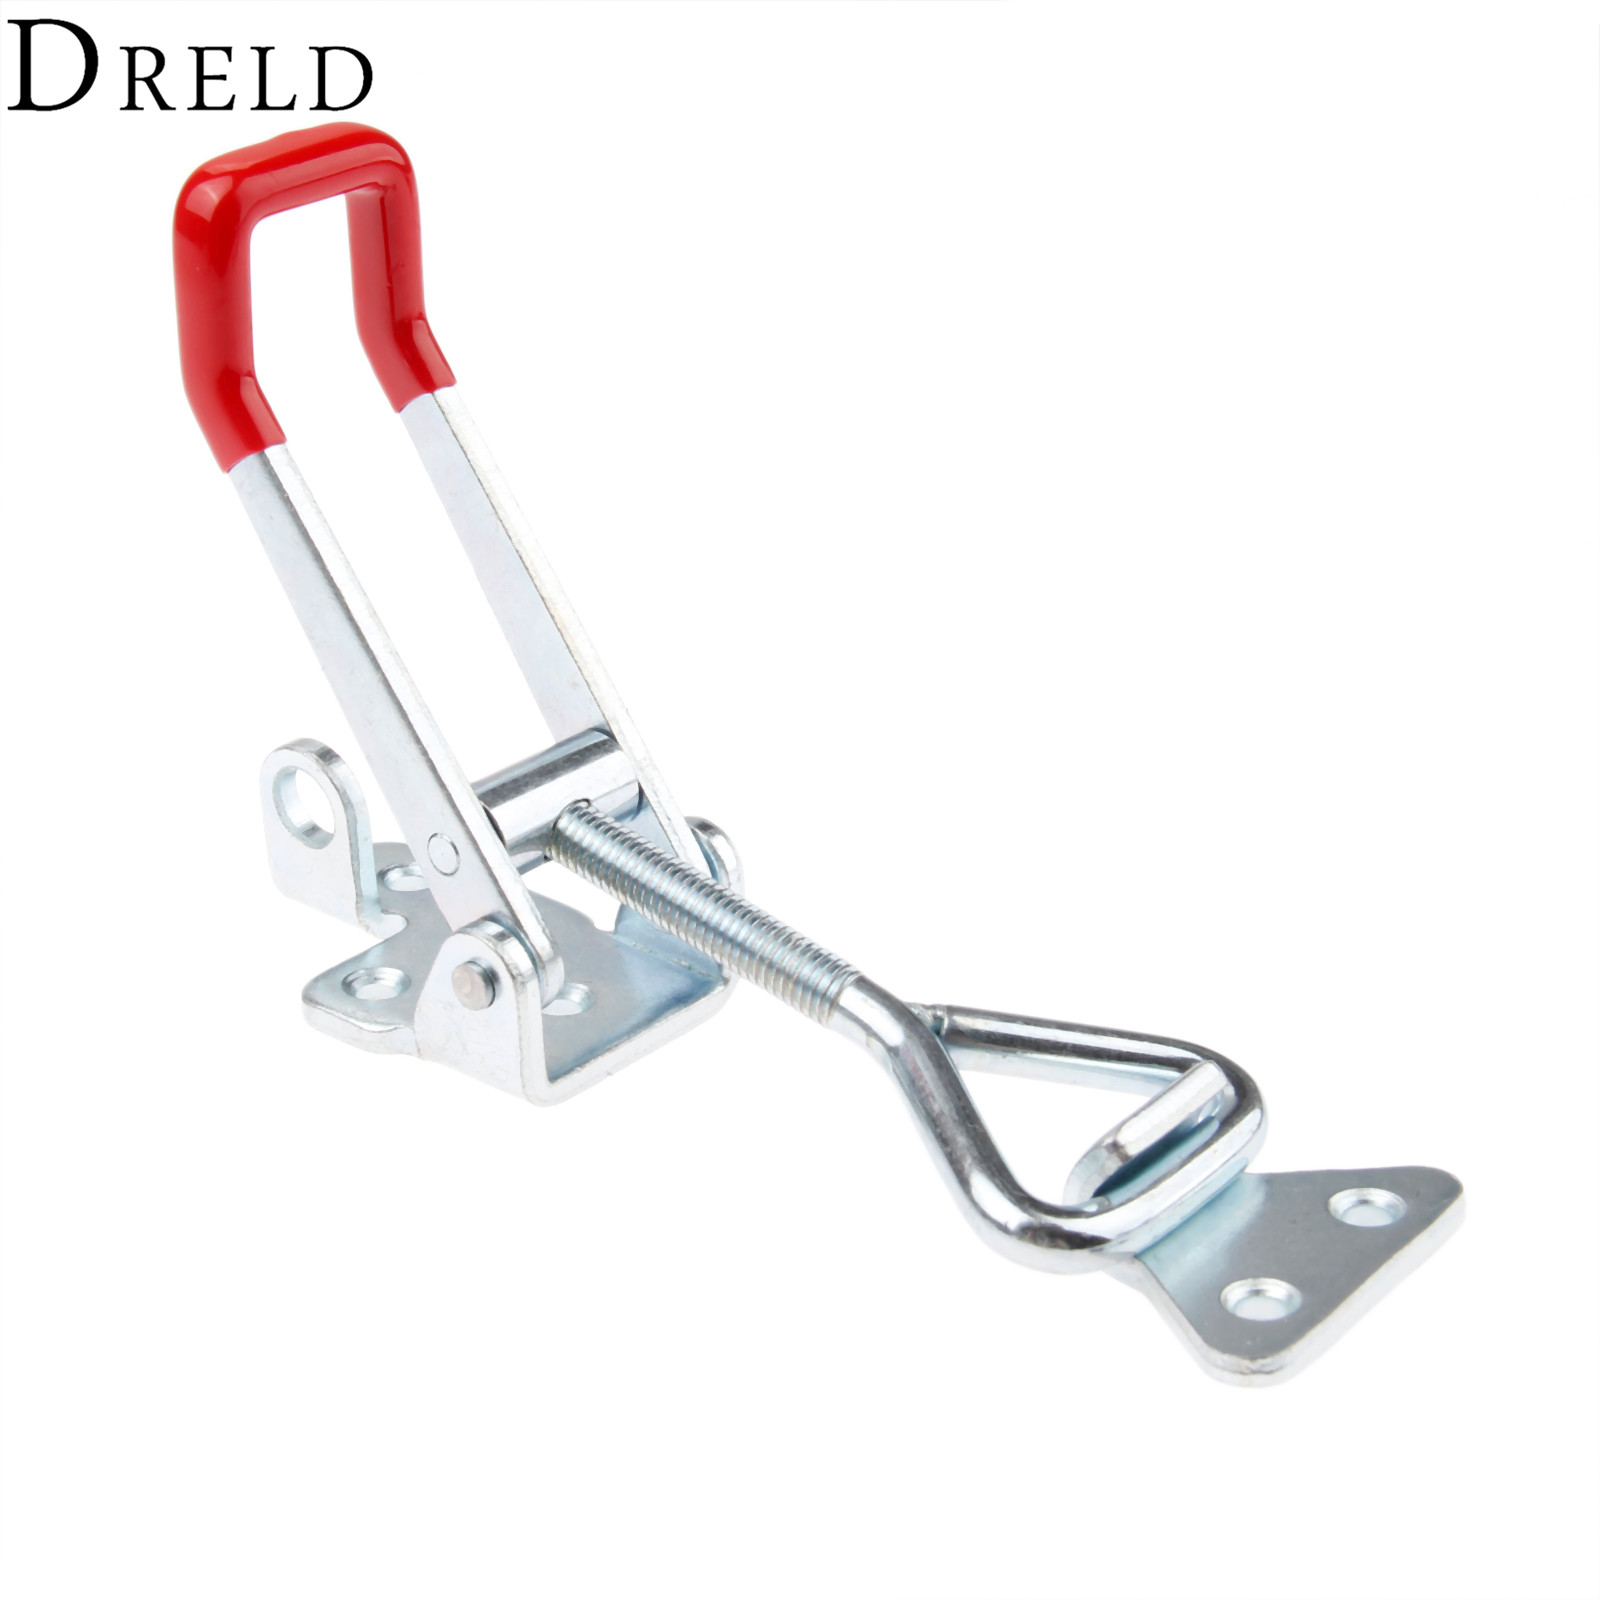 DRELD 1pc GH-4003 Parighasana Toggle Clamp Clip 300KG/661Lbs Holding Capacity Quick Metal Latch Hand Tool Fixture Clamp